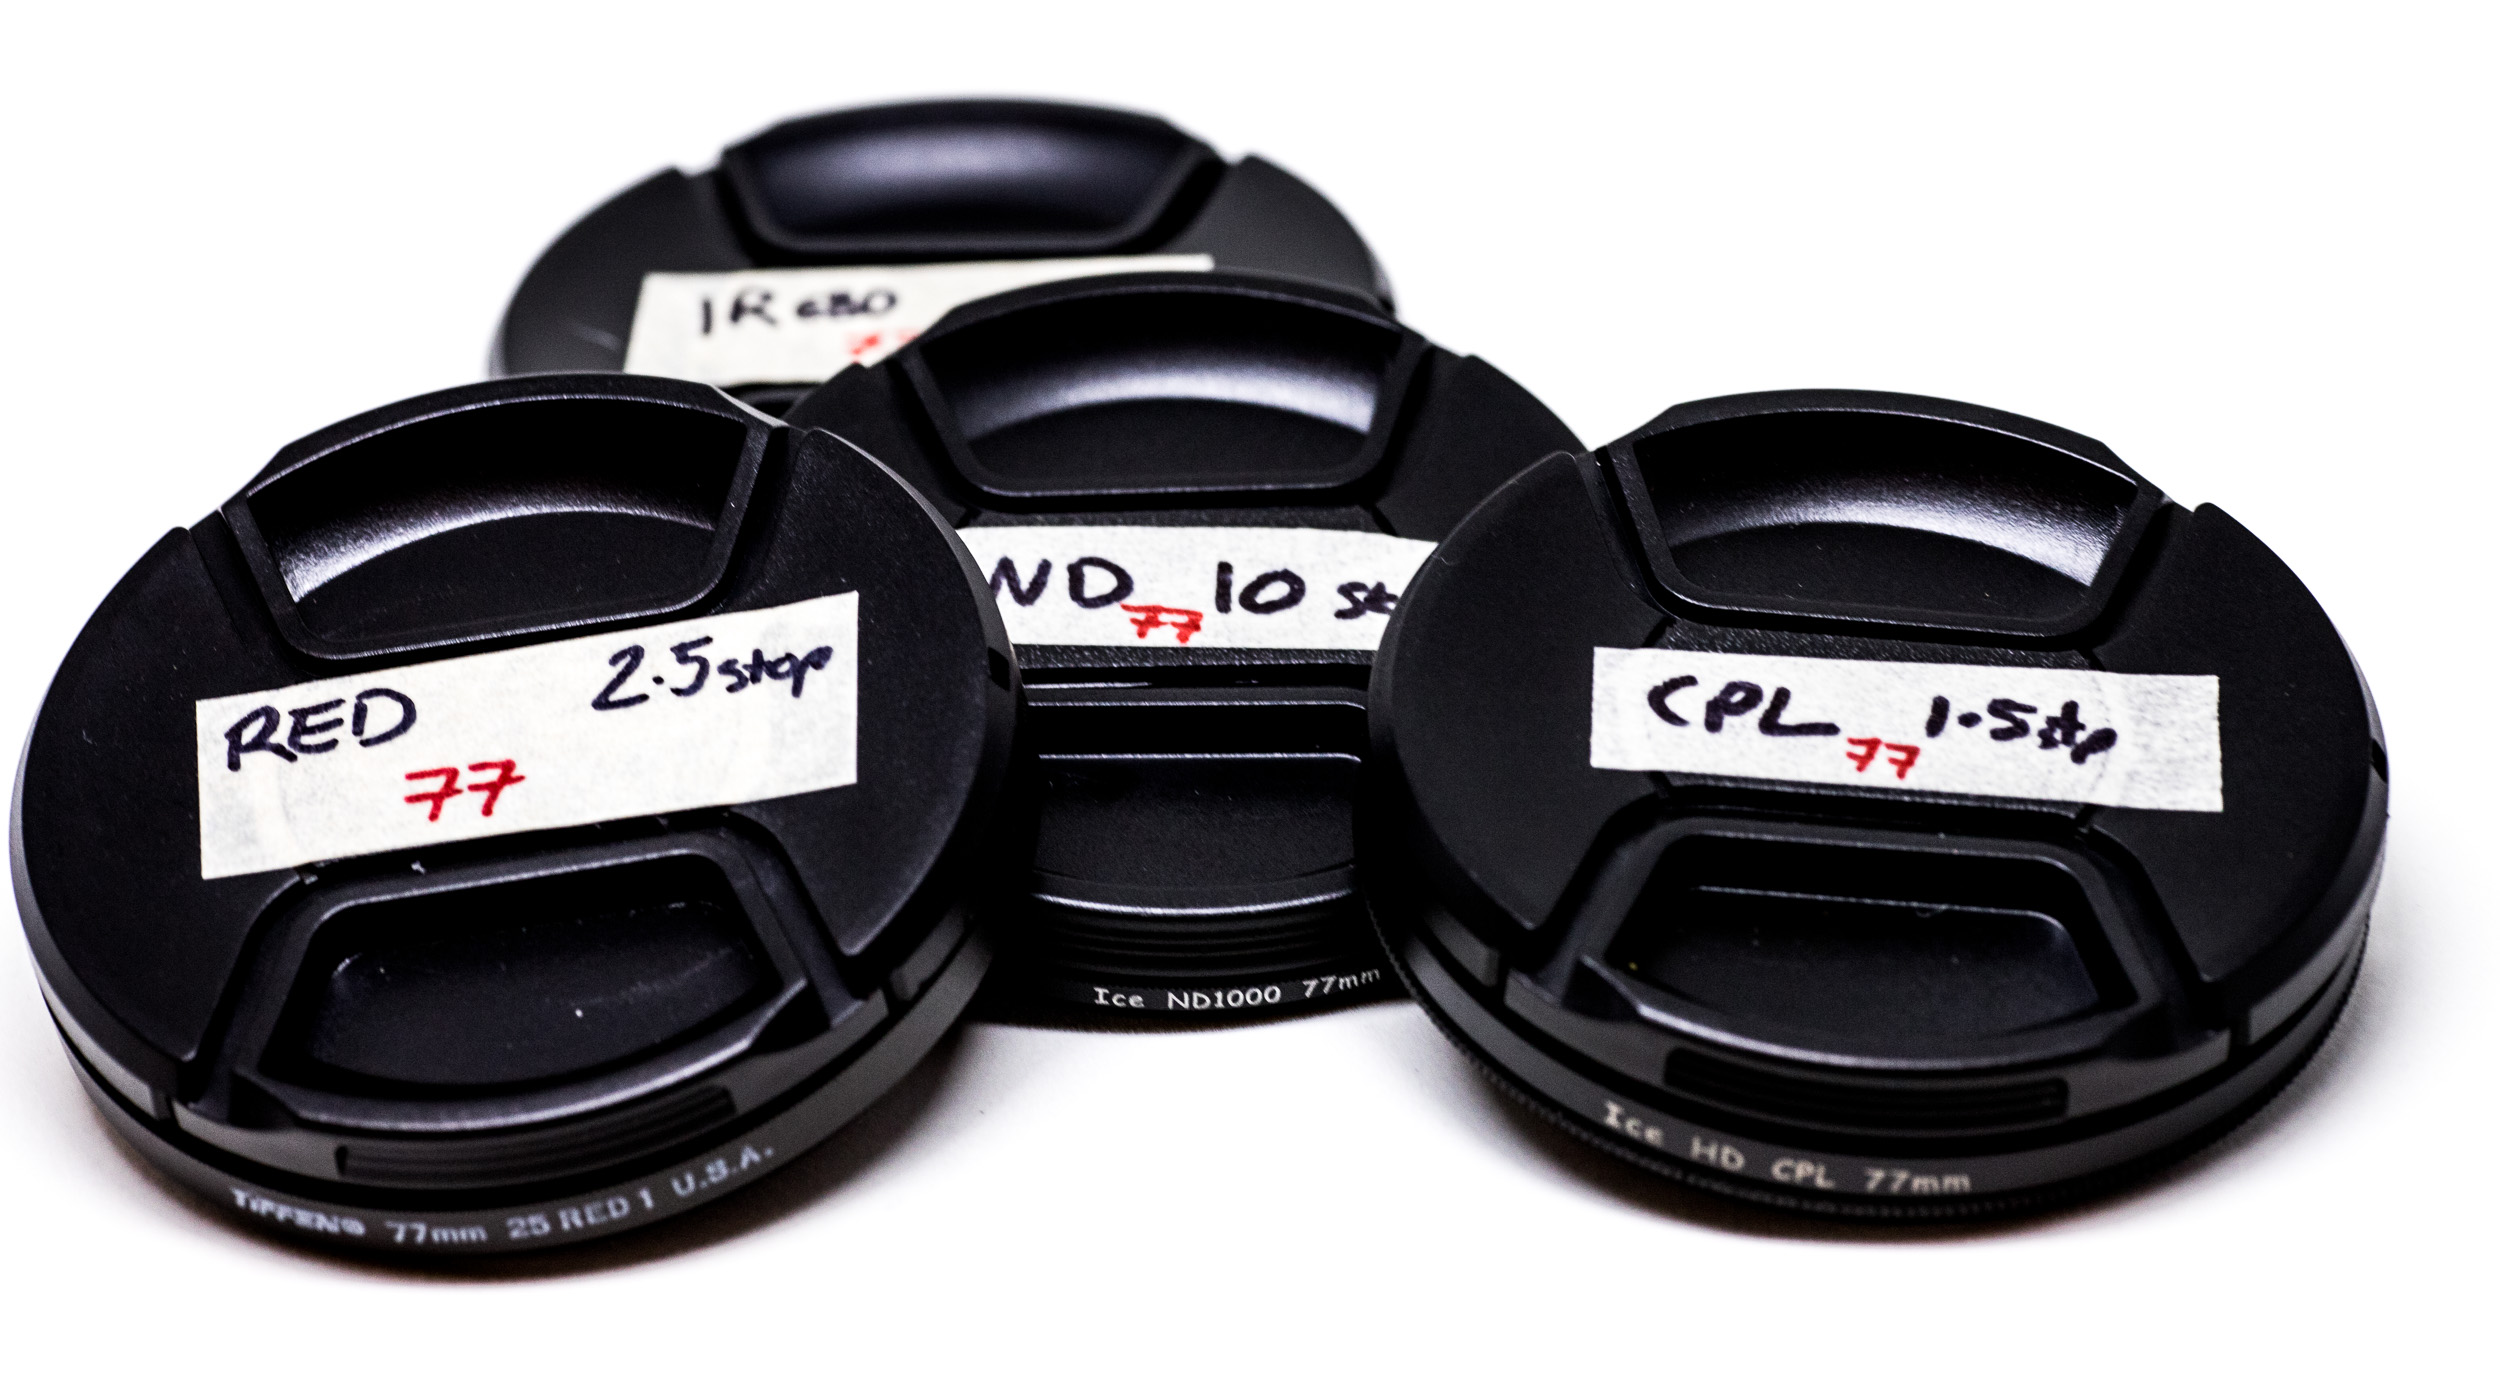 filter lens caps with description